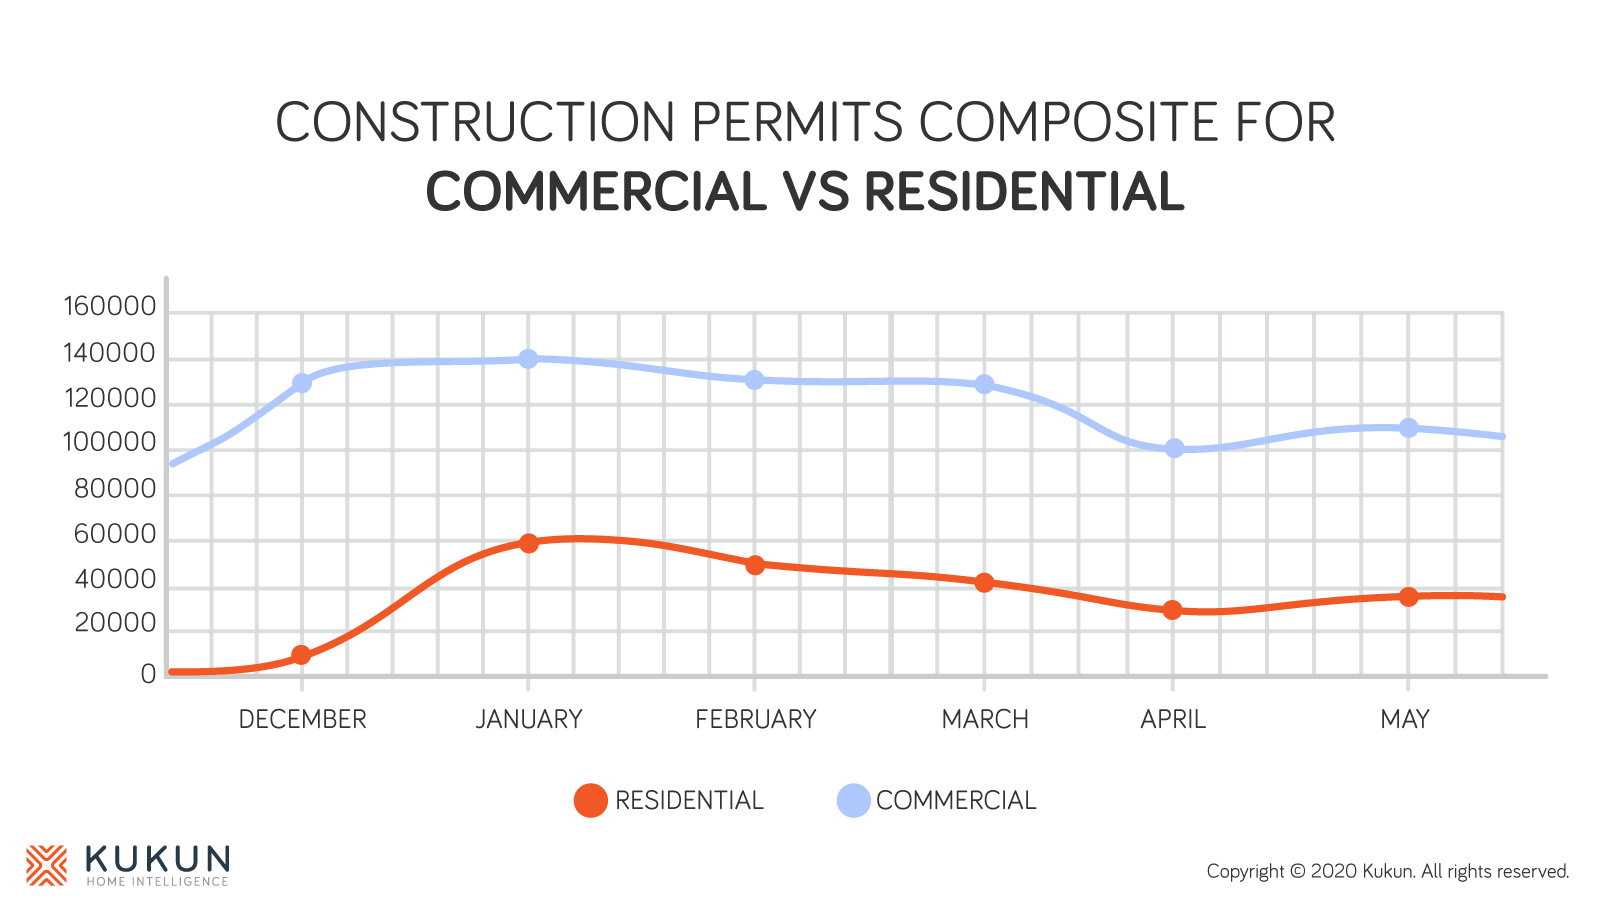 Construction permit data during covid-19